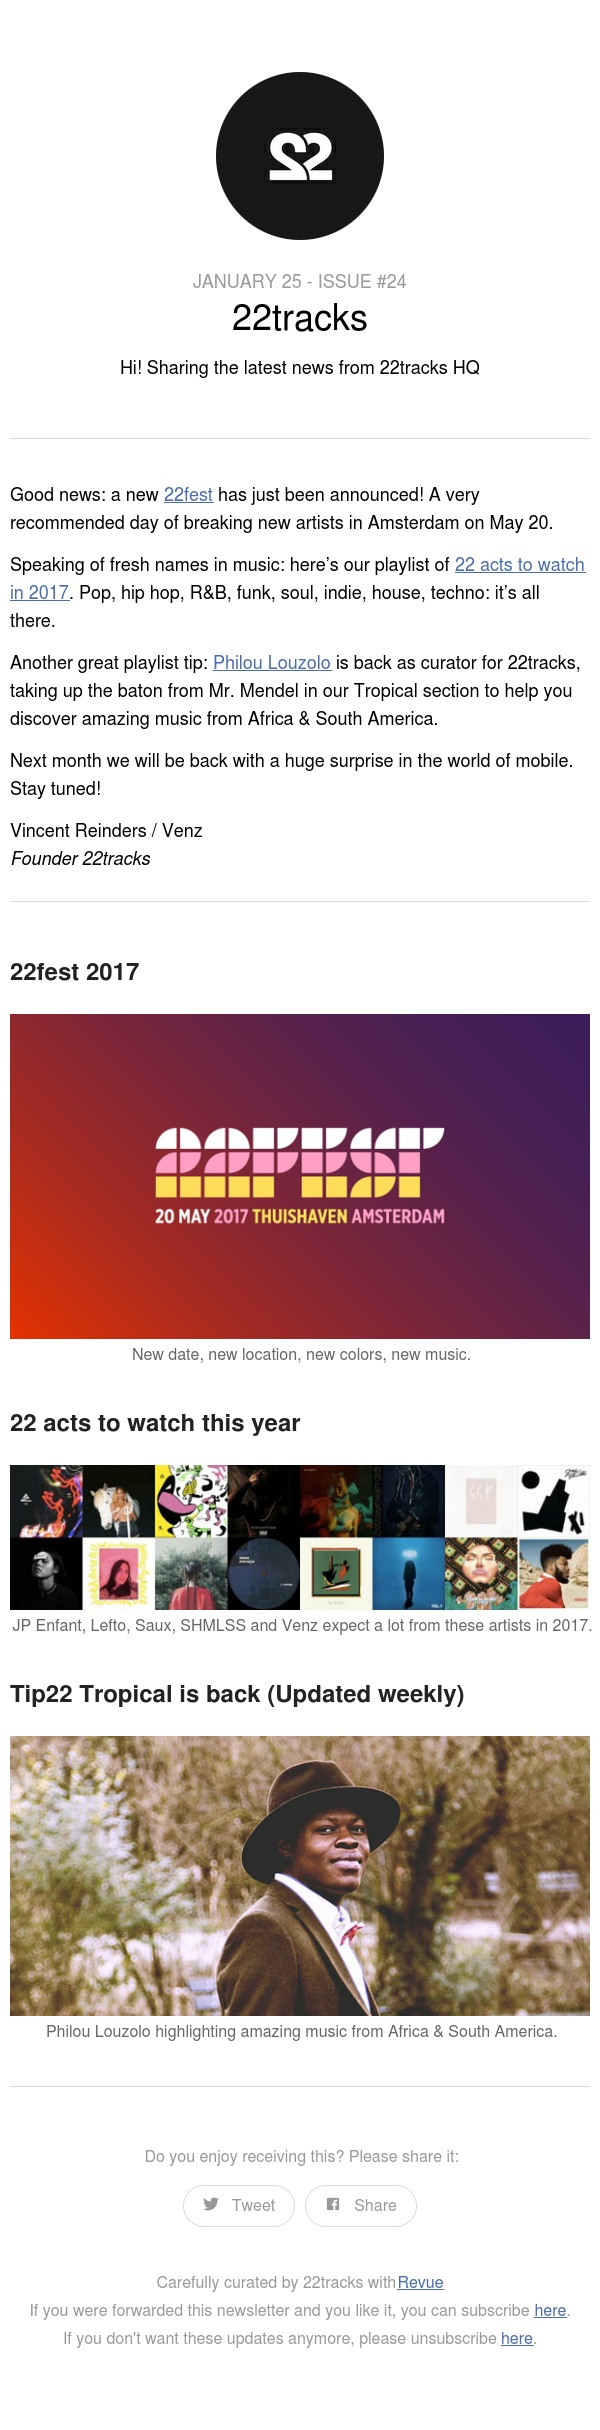 22fest, 22 acts to watch in 2017 & Tip22 Tropical - Issue #24